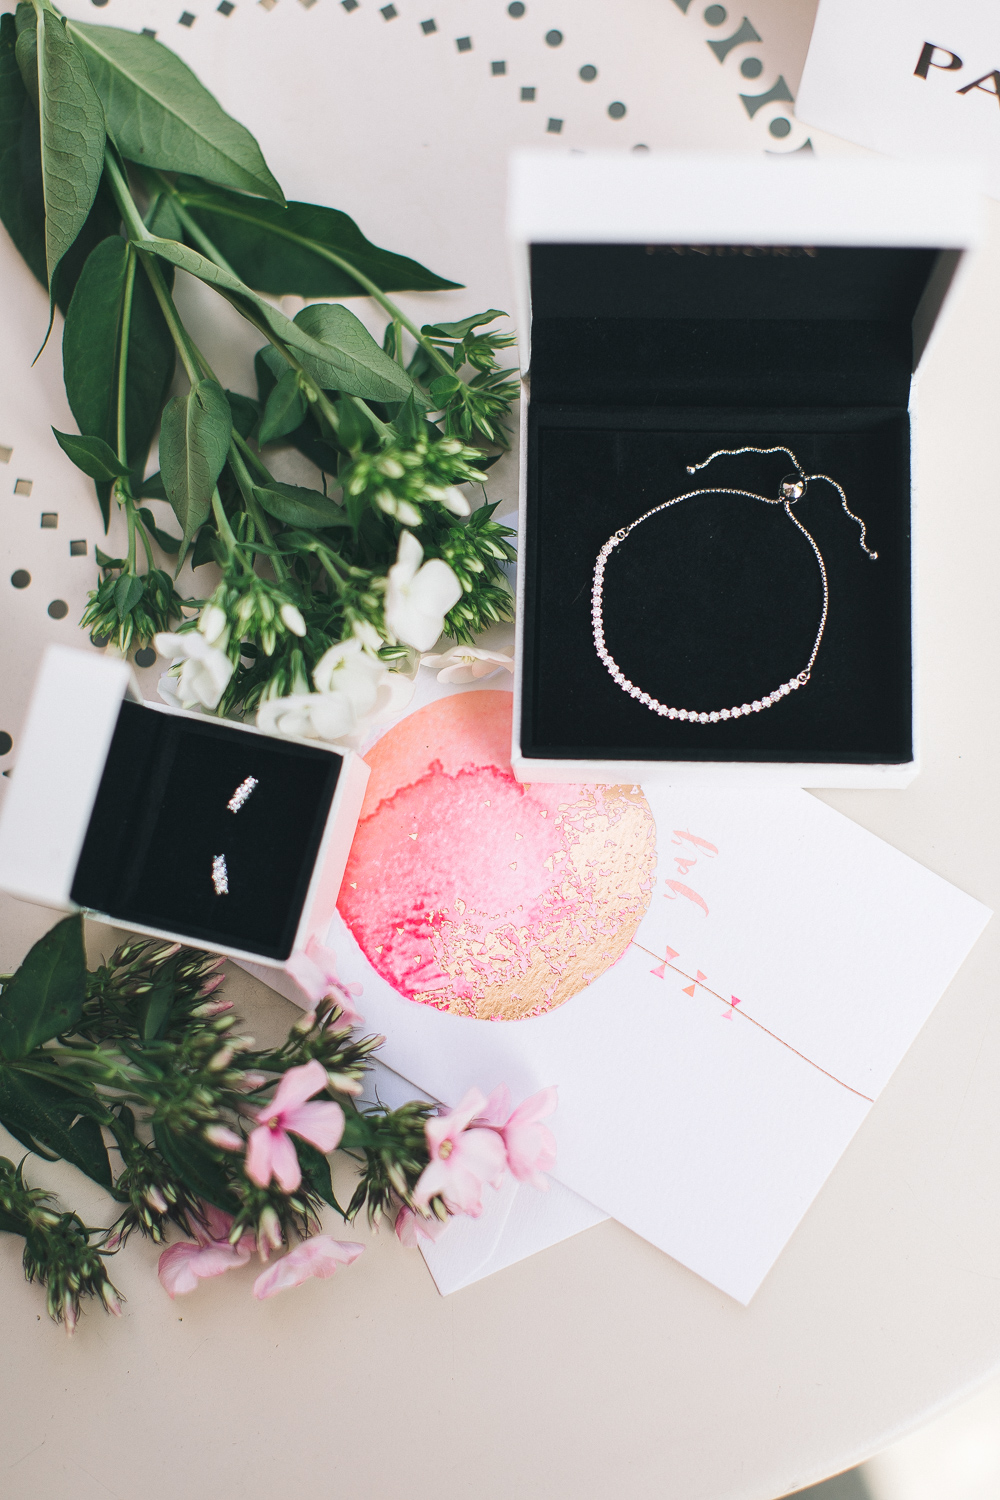 Wedding Thank You Gifts For Bridesmaids: Thank You Gifts For Bridesmaids From PANDORA